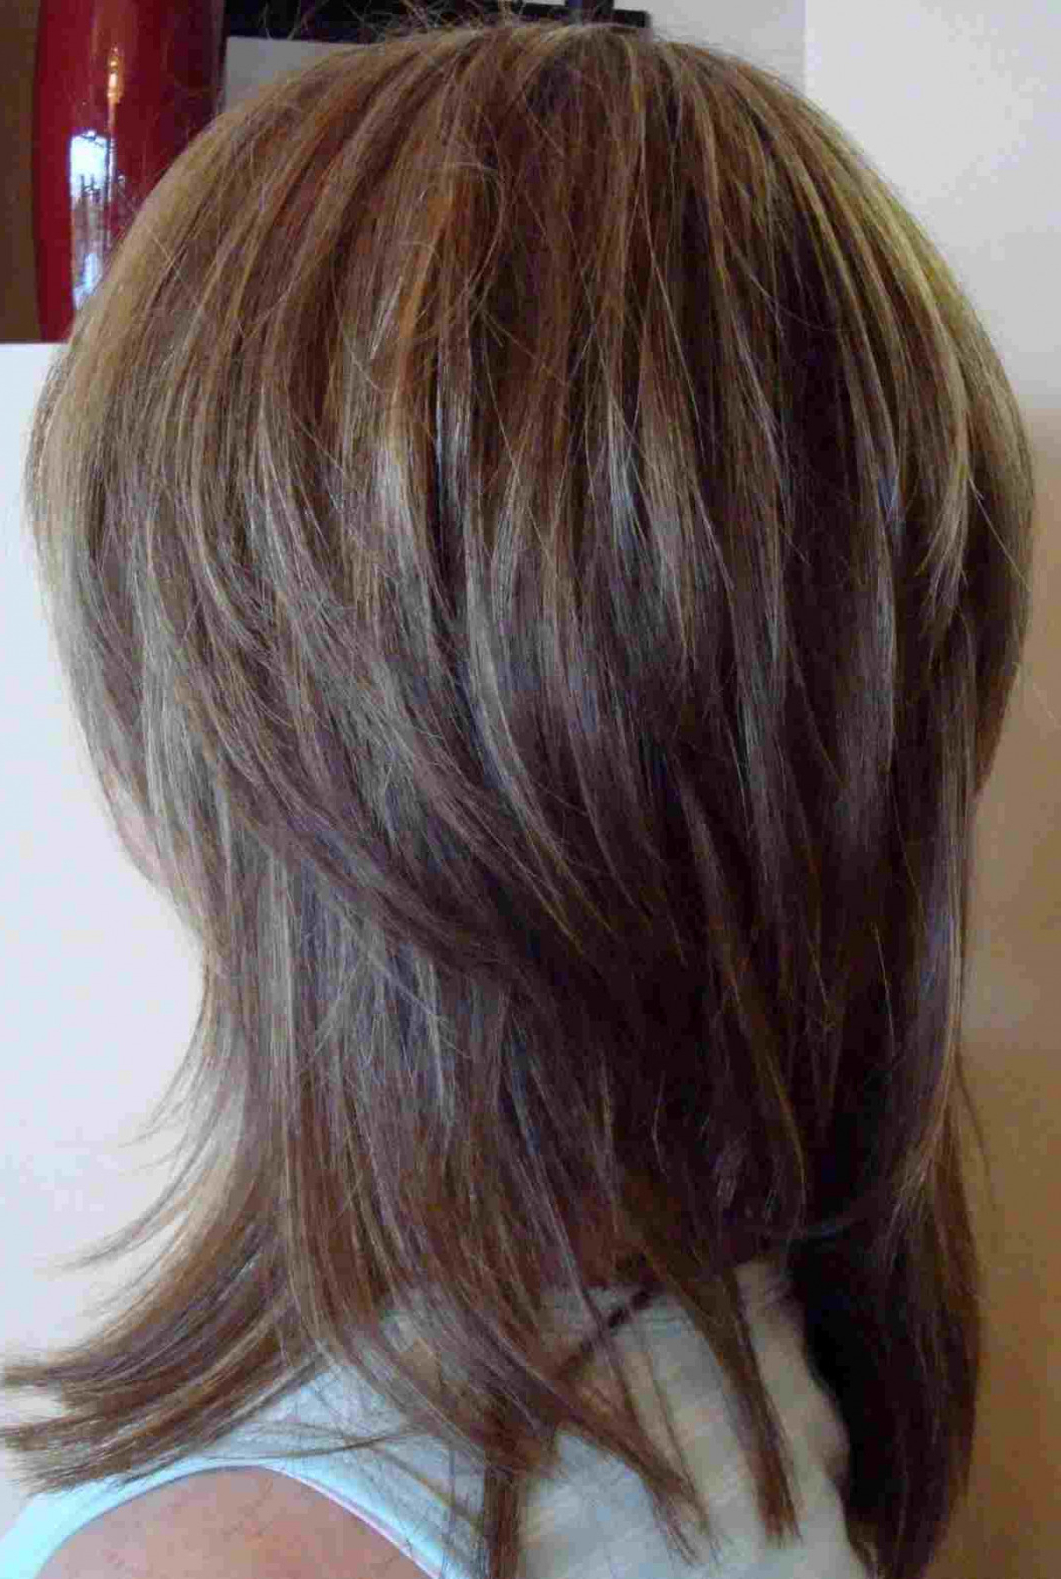 Well Liked V Shaped Layered Medium Haircuts Pertaining To Medium Layered Hair Back View V Shape Rhwebsignsucom Afro Hairstyles (View 19 of 20)